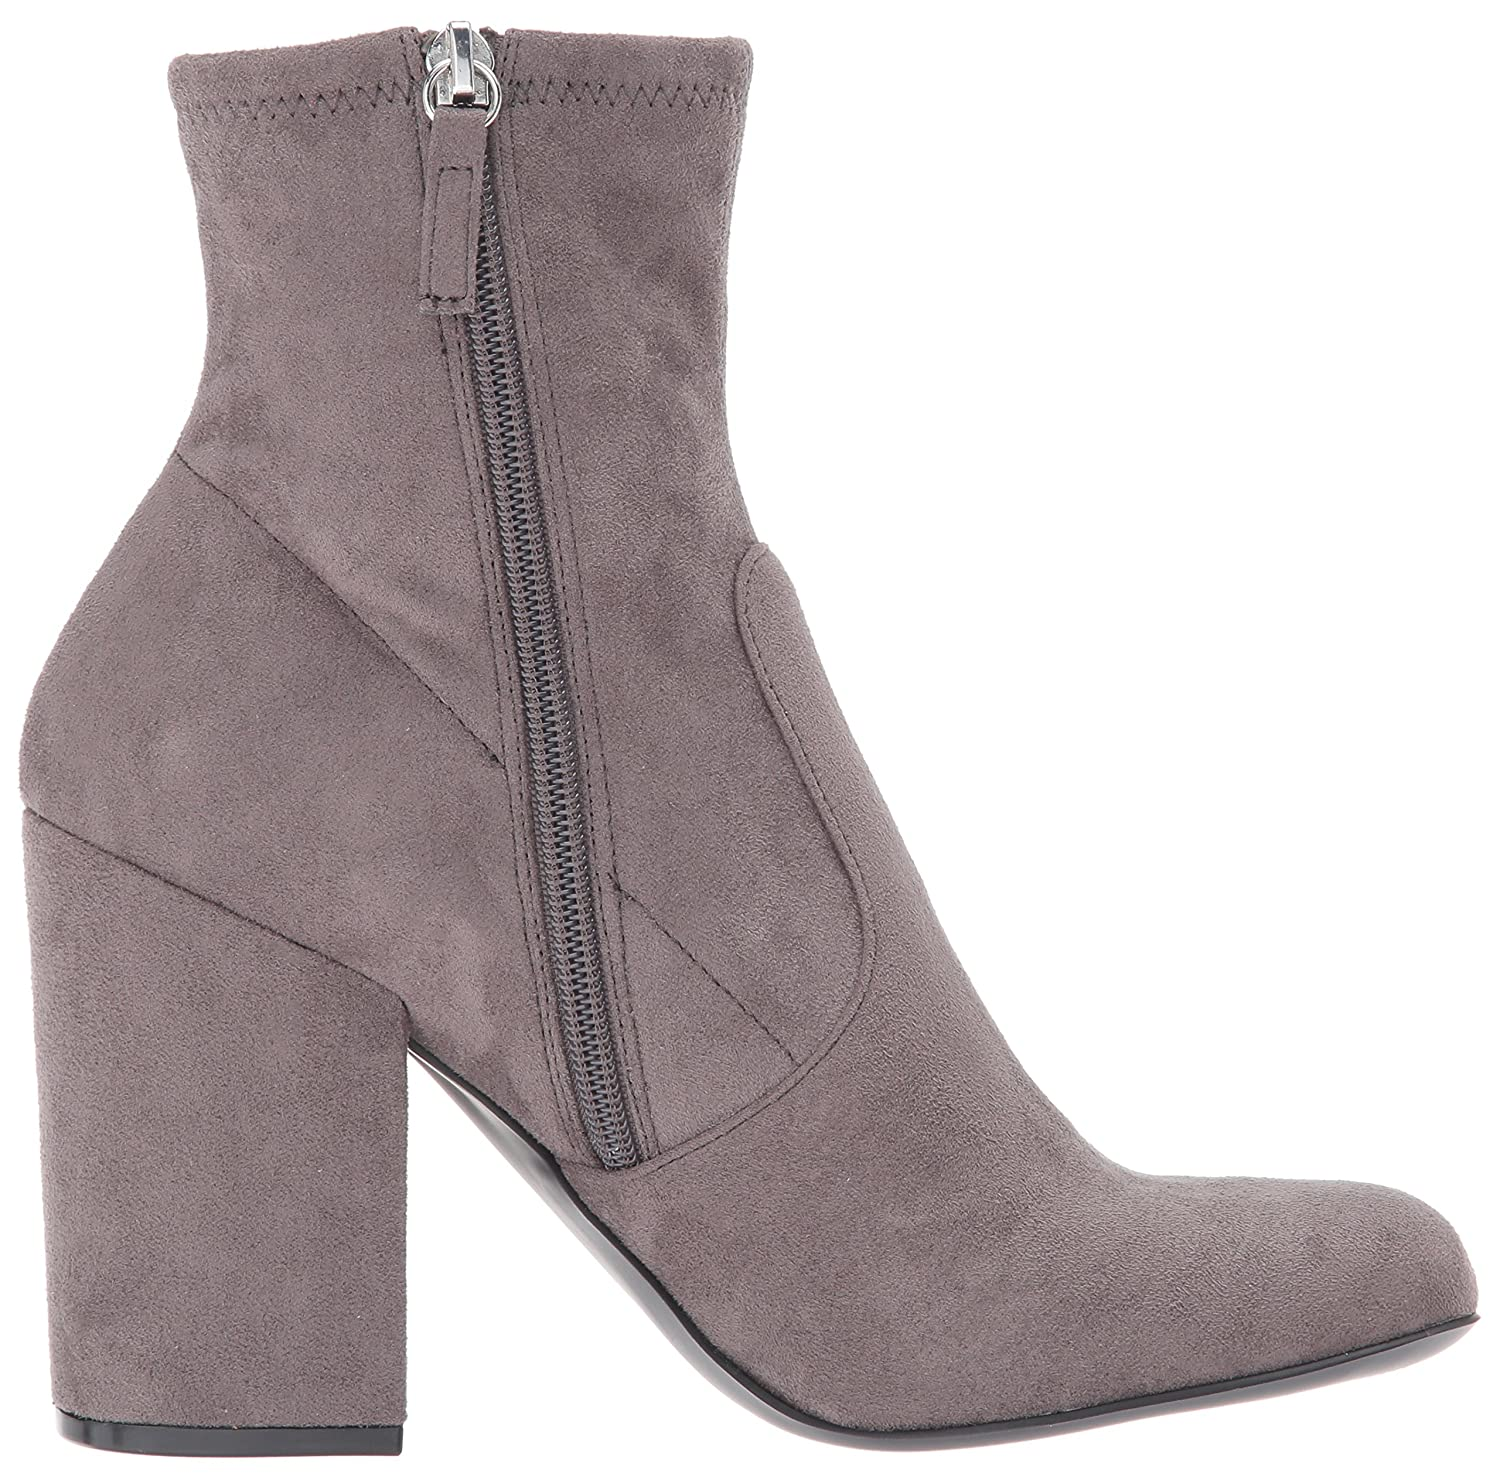 75a19a83f16 Steve Madden Women s Gaze Ankle Bootie  Buy Online at Low Prices in India -  Amazon.in